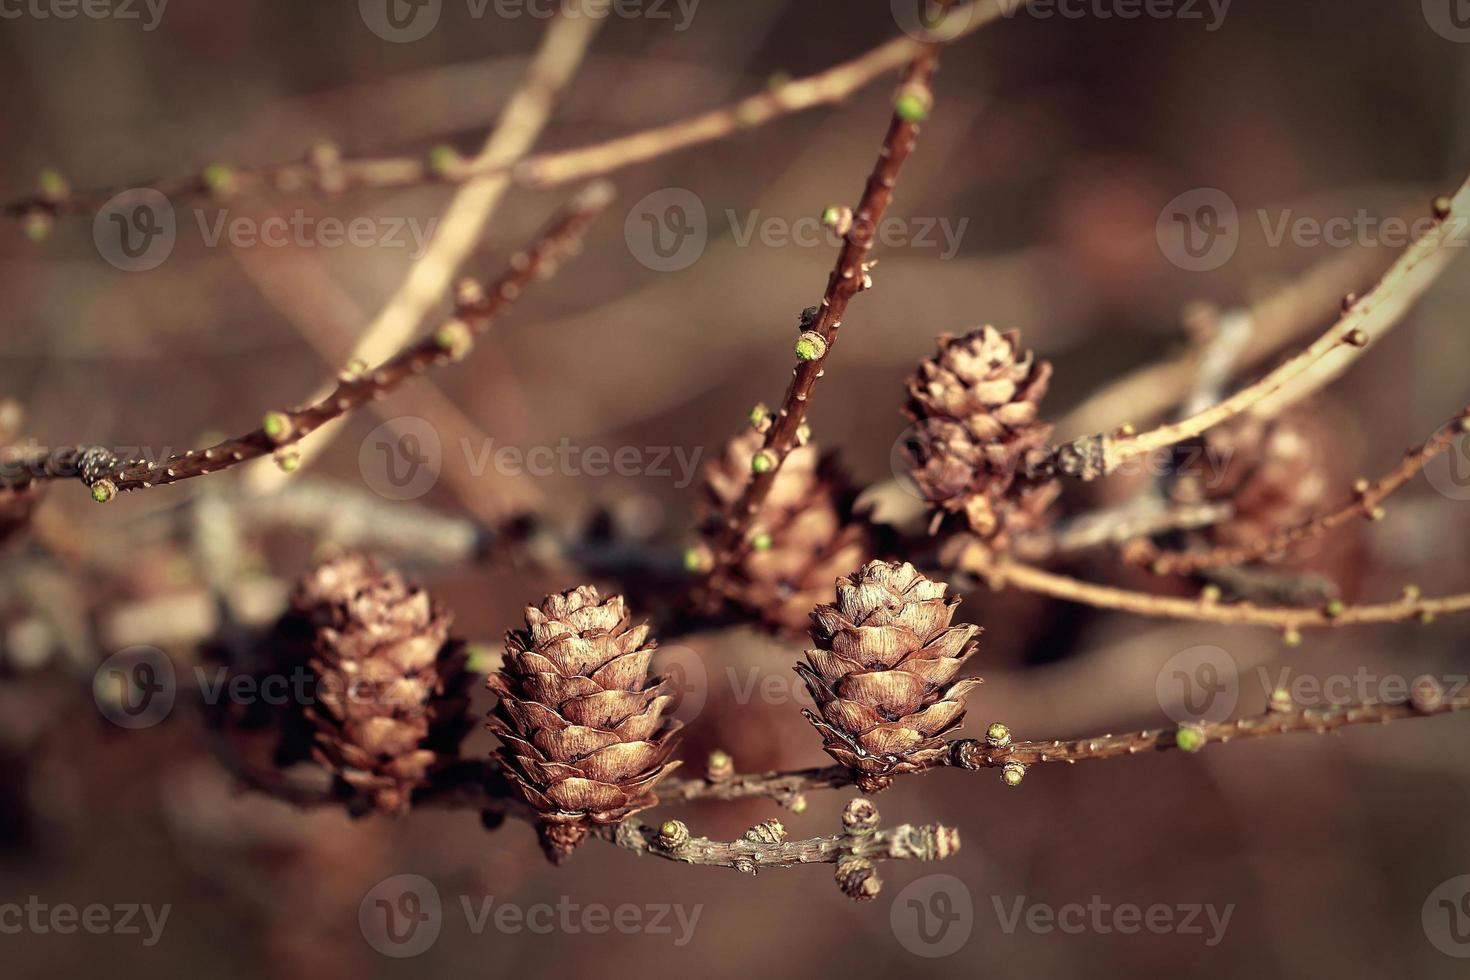 Cones on the branch wooden nature background. Retro colour filters photo